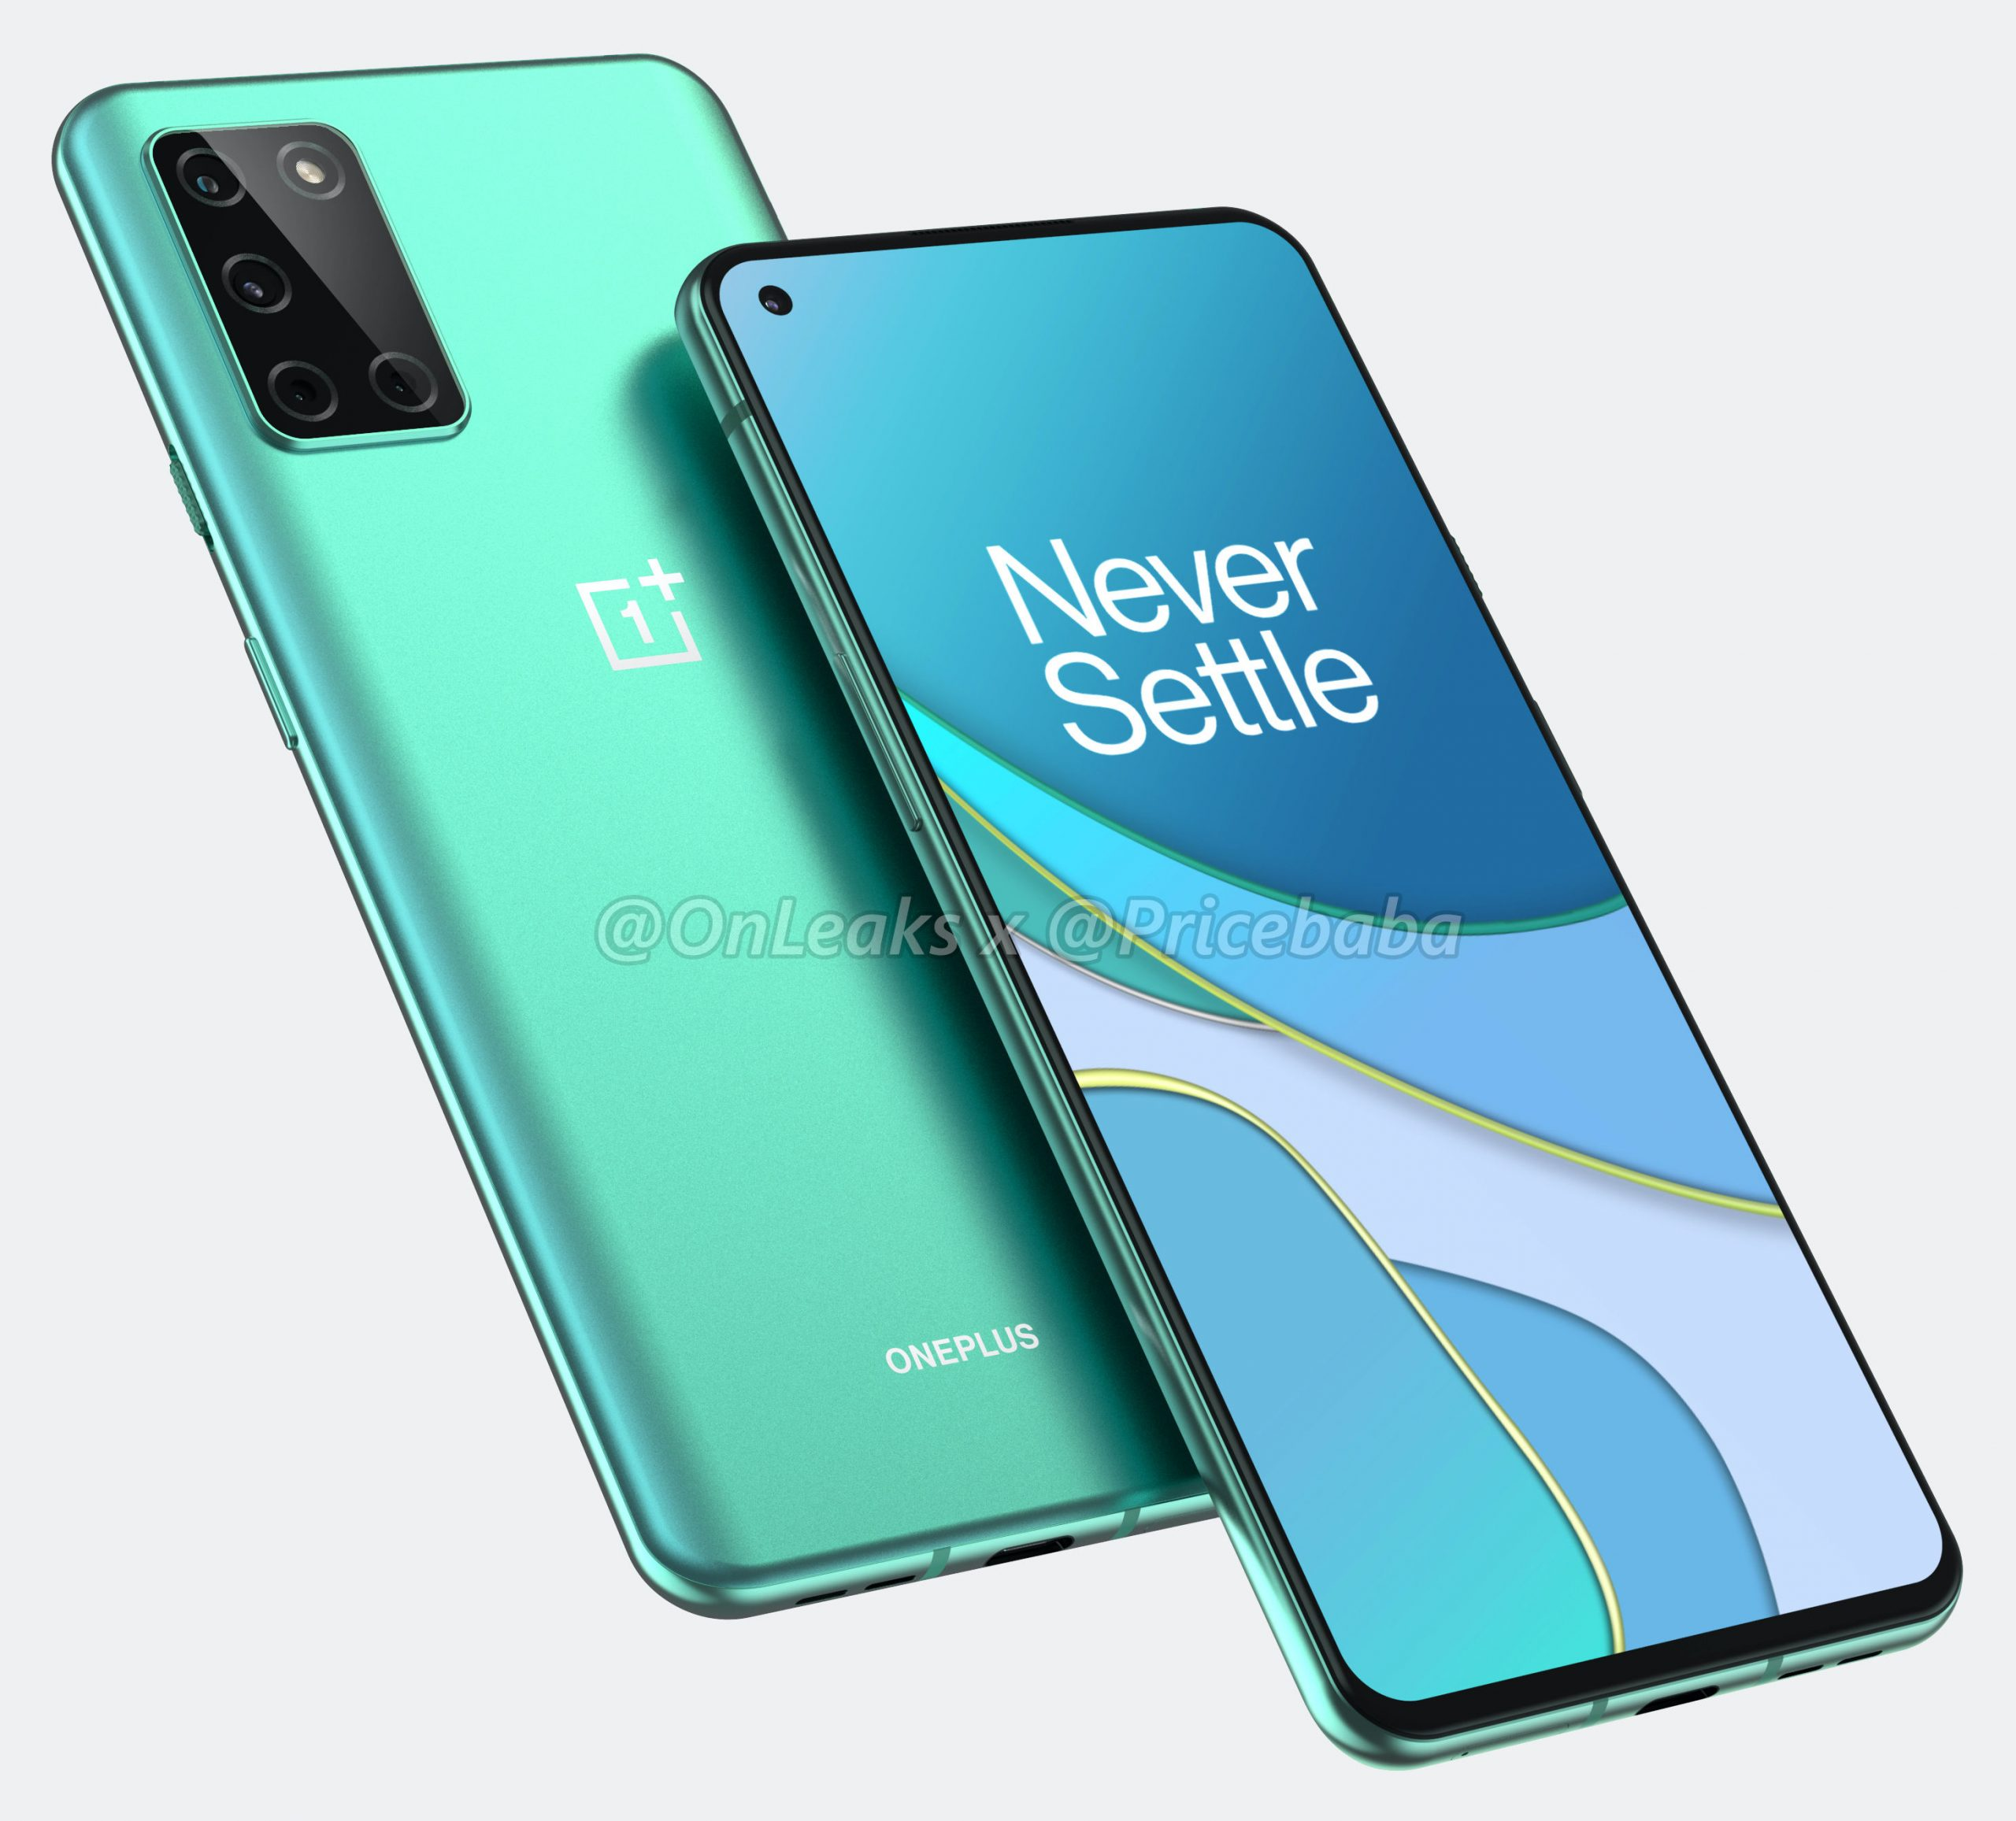 OnePlus 8T renders leak, showing new placement for the rear cameras - comments